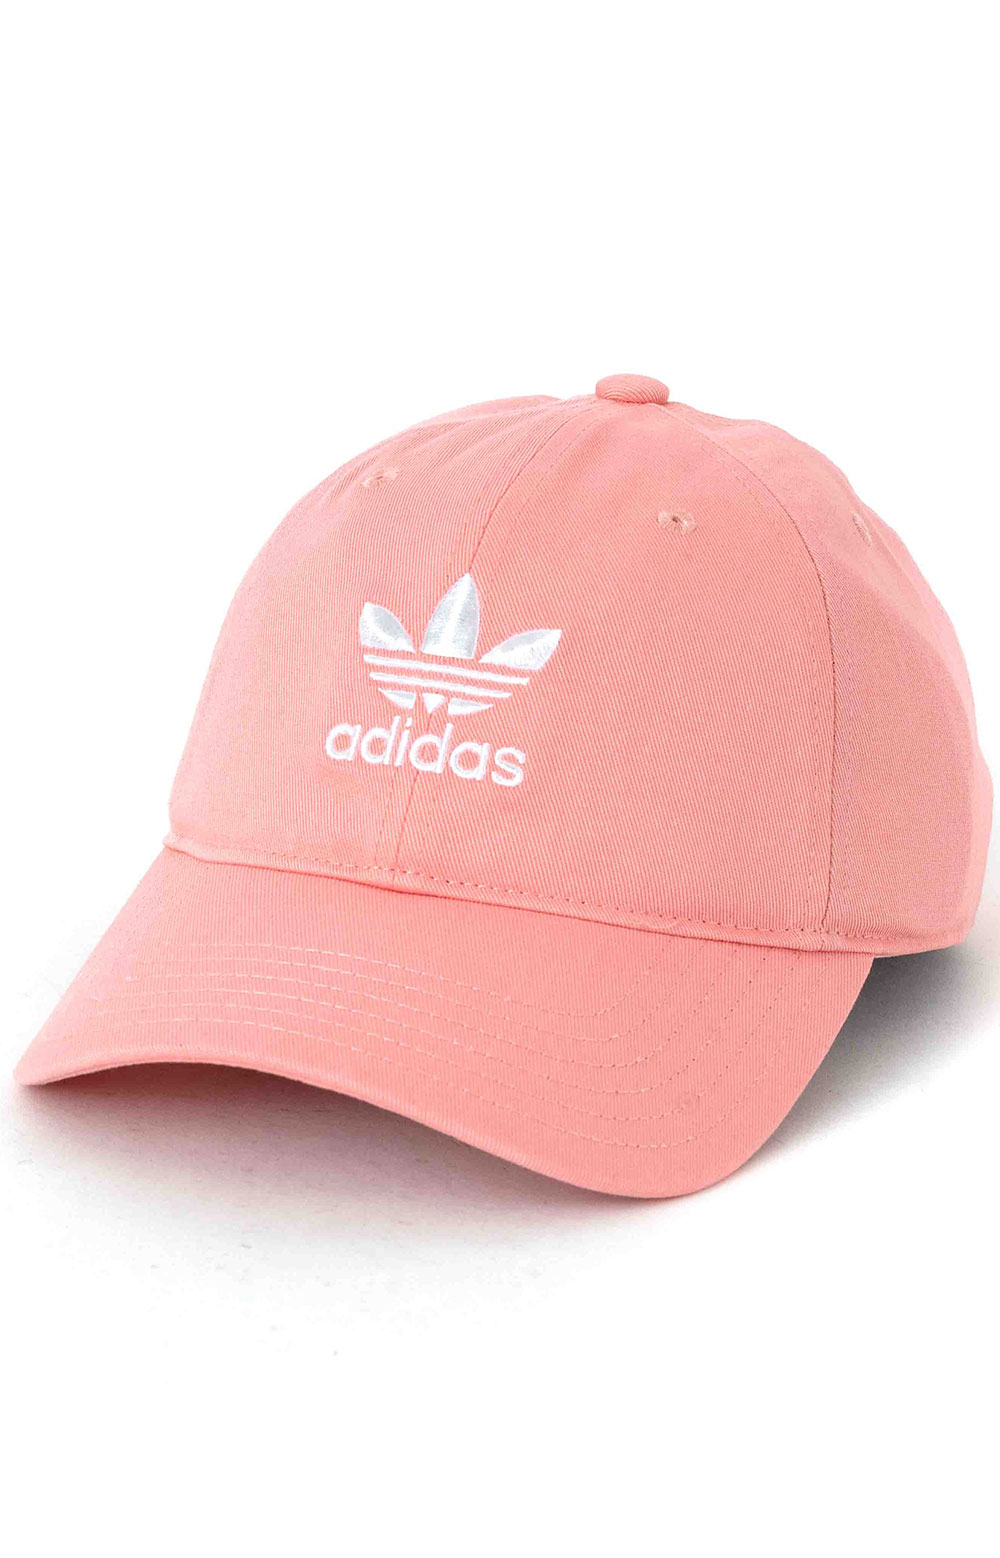 Originals Relaxed Strap-Back Hat - Glory Pink/White